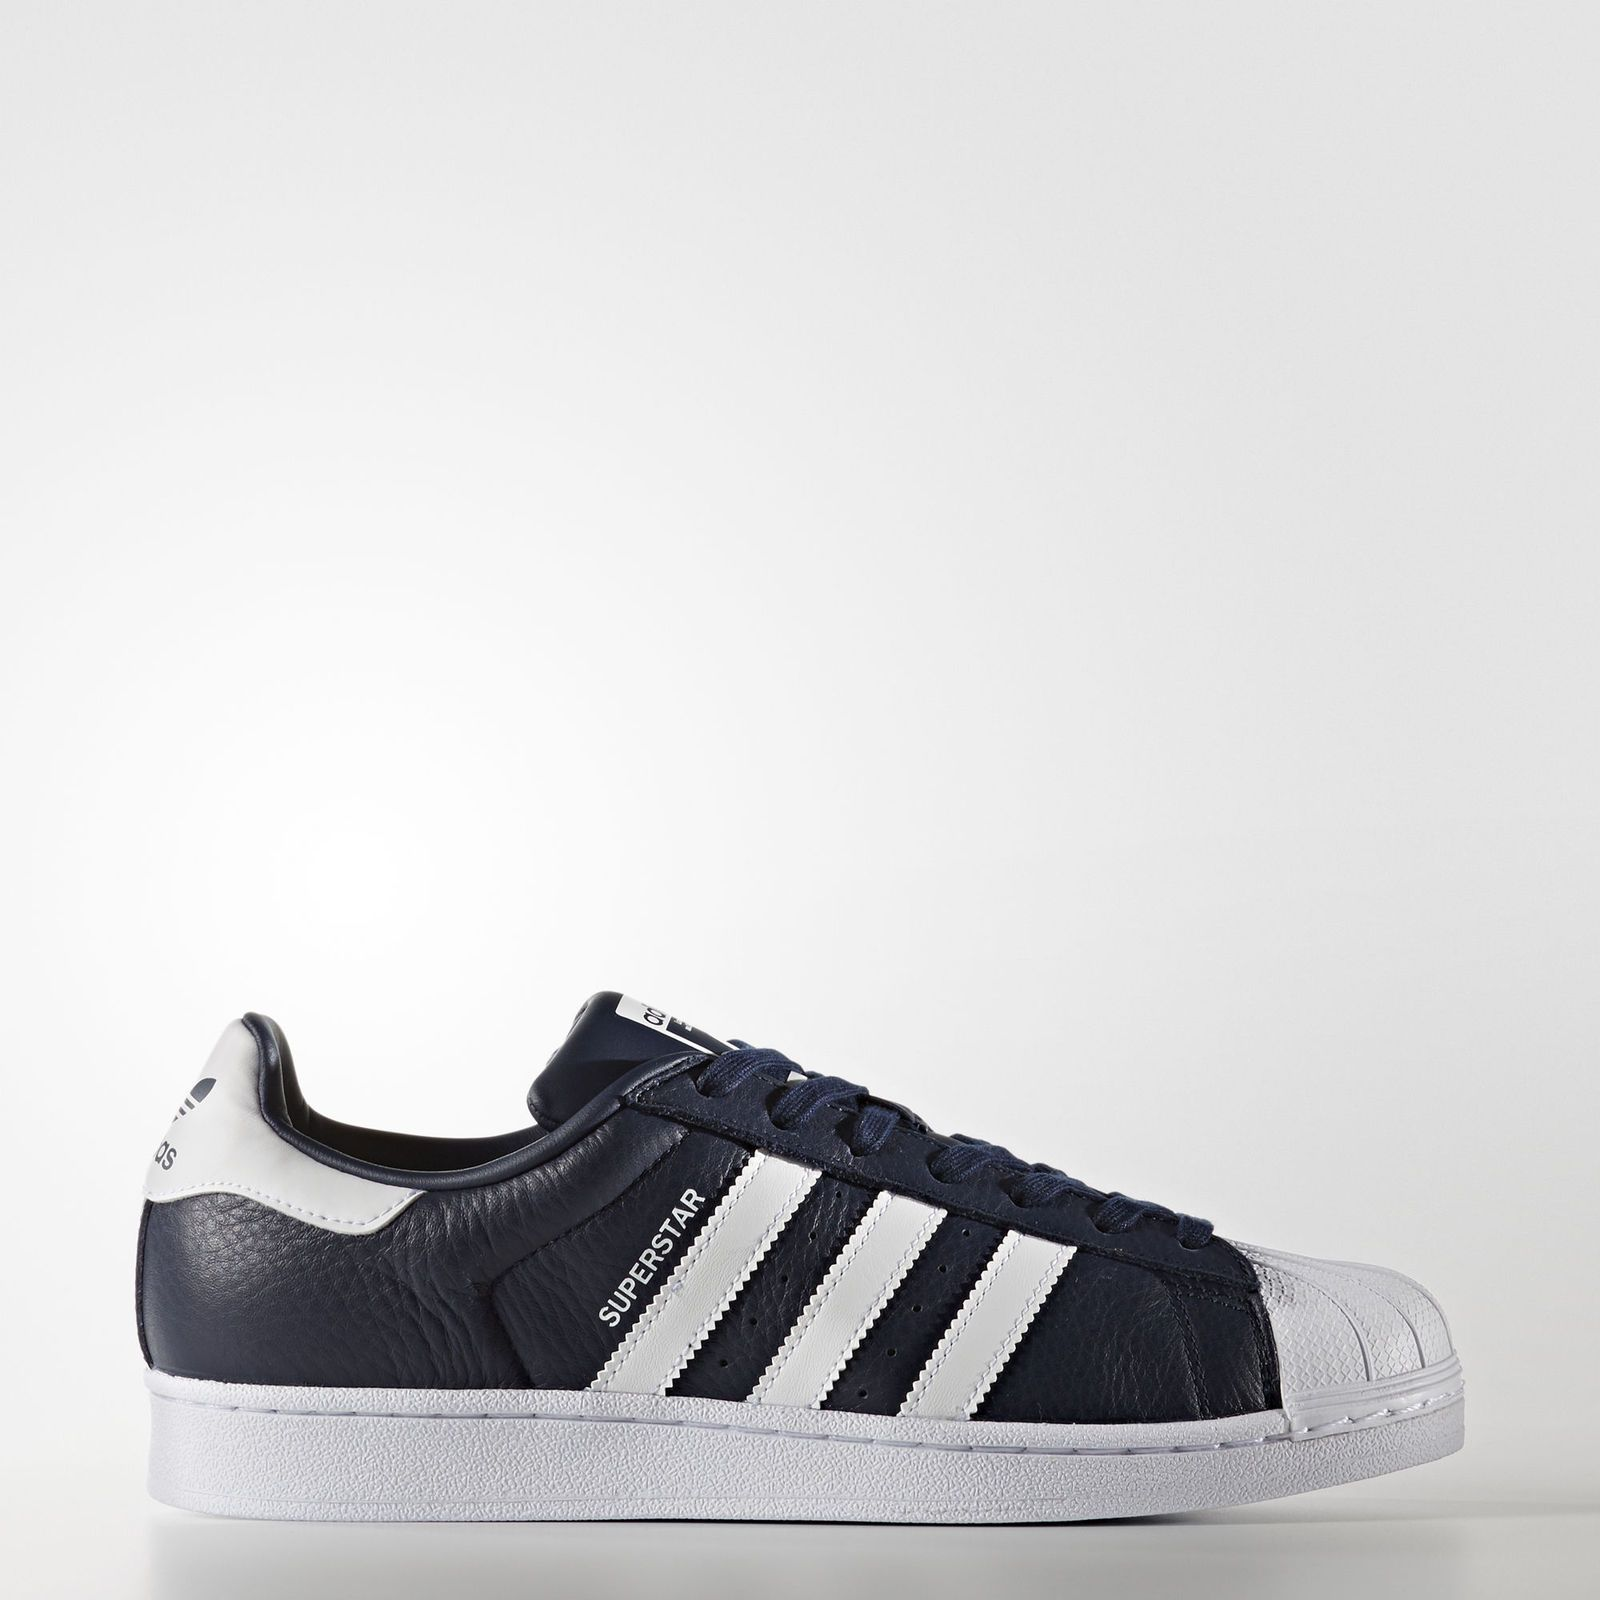 $29.99, Was $80, 62% Off! New adidas Originals Superstar